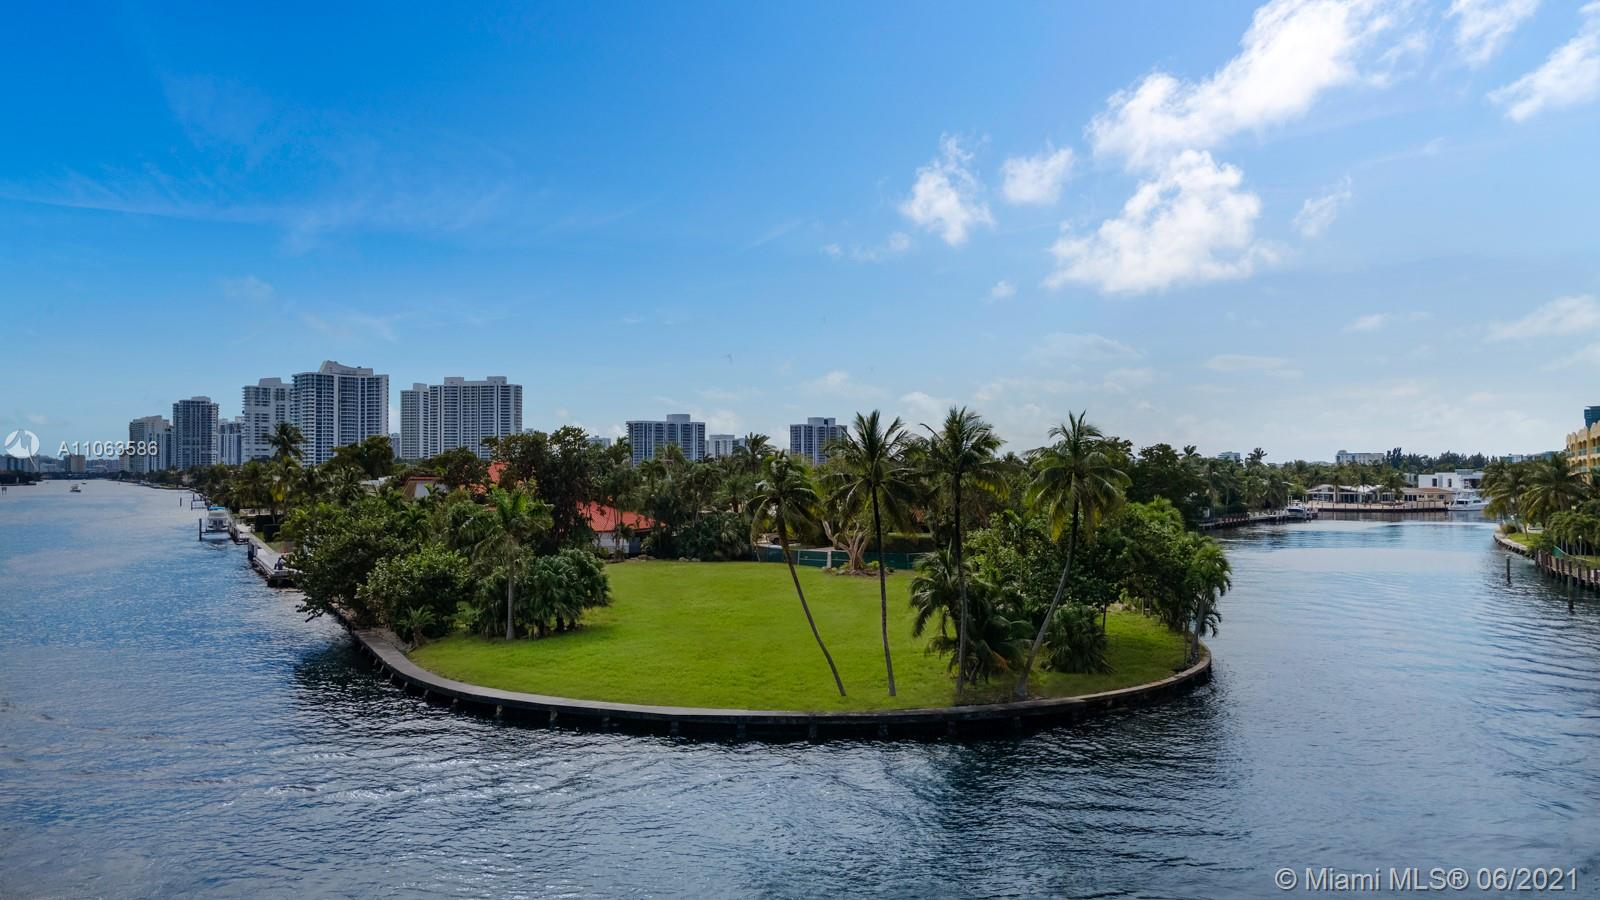 503 Palm Dr Luxury Real Estate